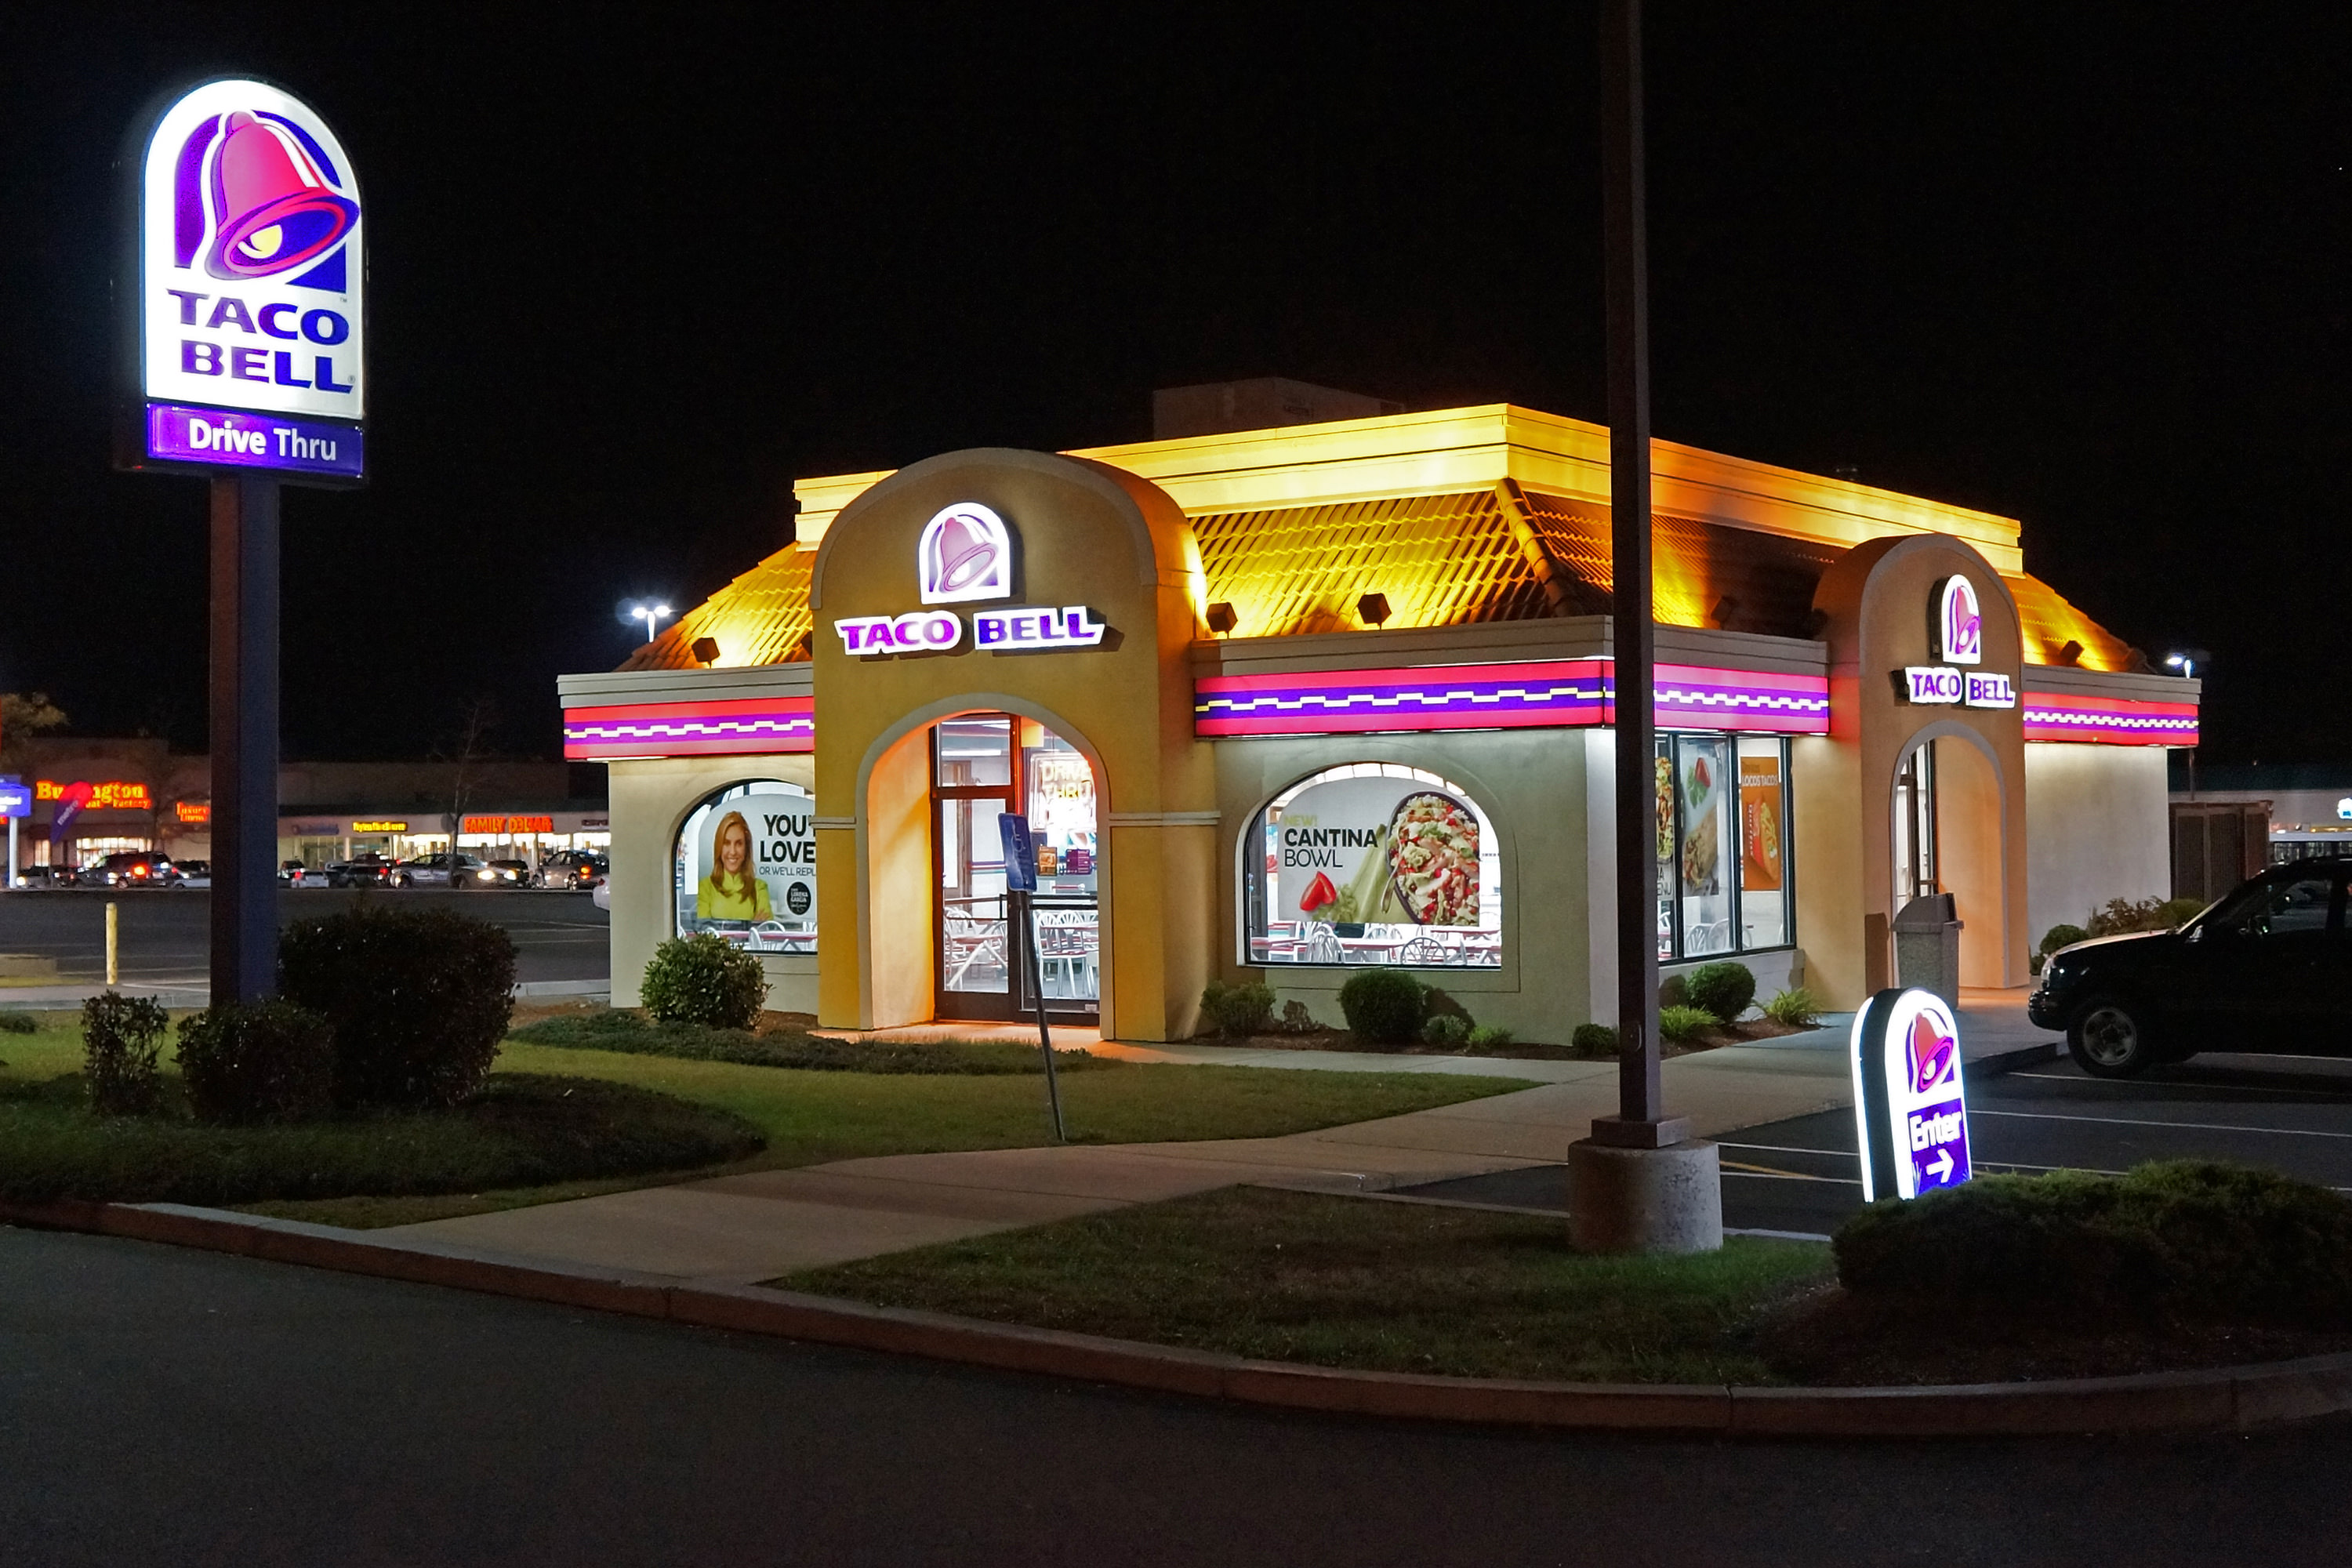 Every Taco Bell Is a Chapel